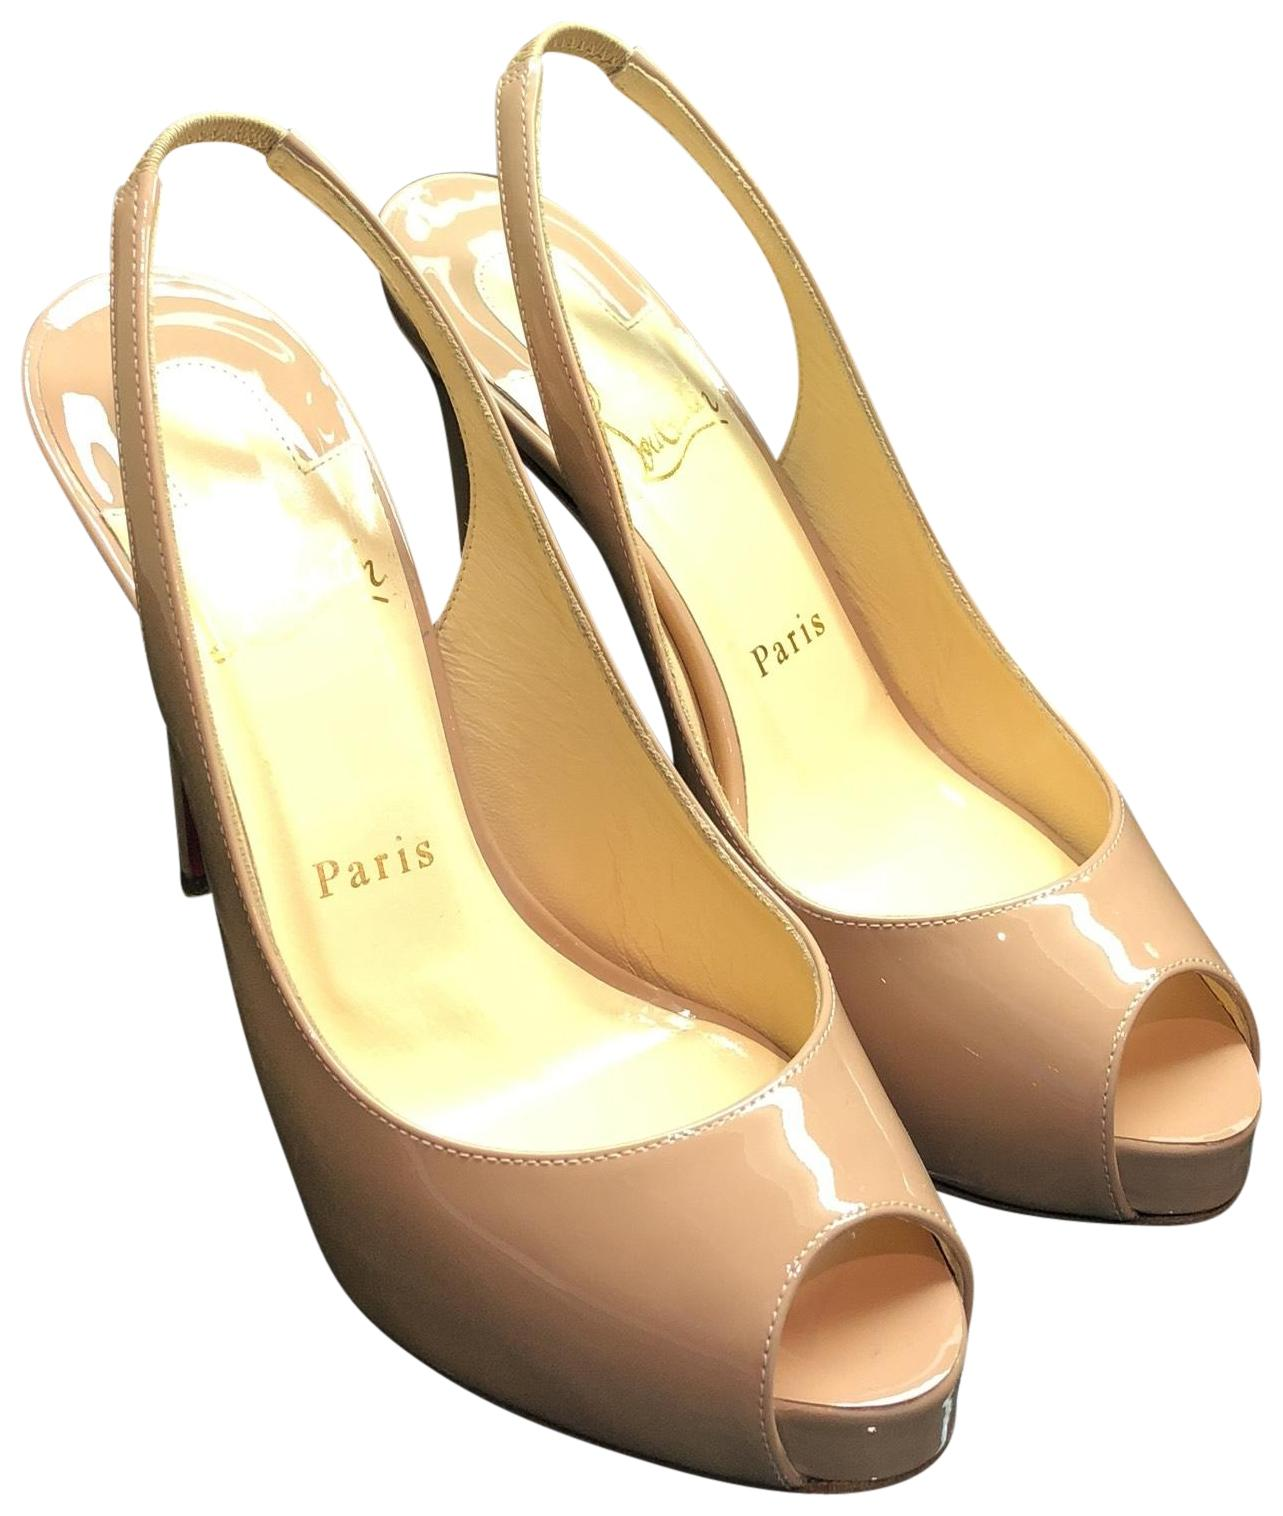 e3dc1868fb28 Christian Louboutin Nude Private Number Patent Leather Leather Leather Peep  Toe Stiletto Platforms Size EU 37 (Approx. US 7) Regular (M